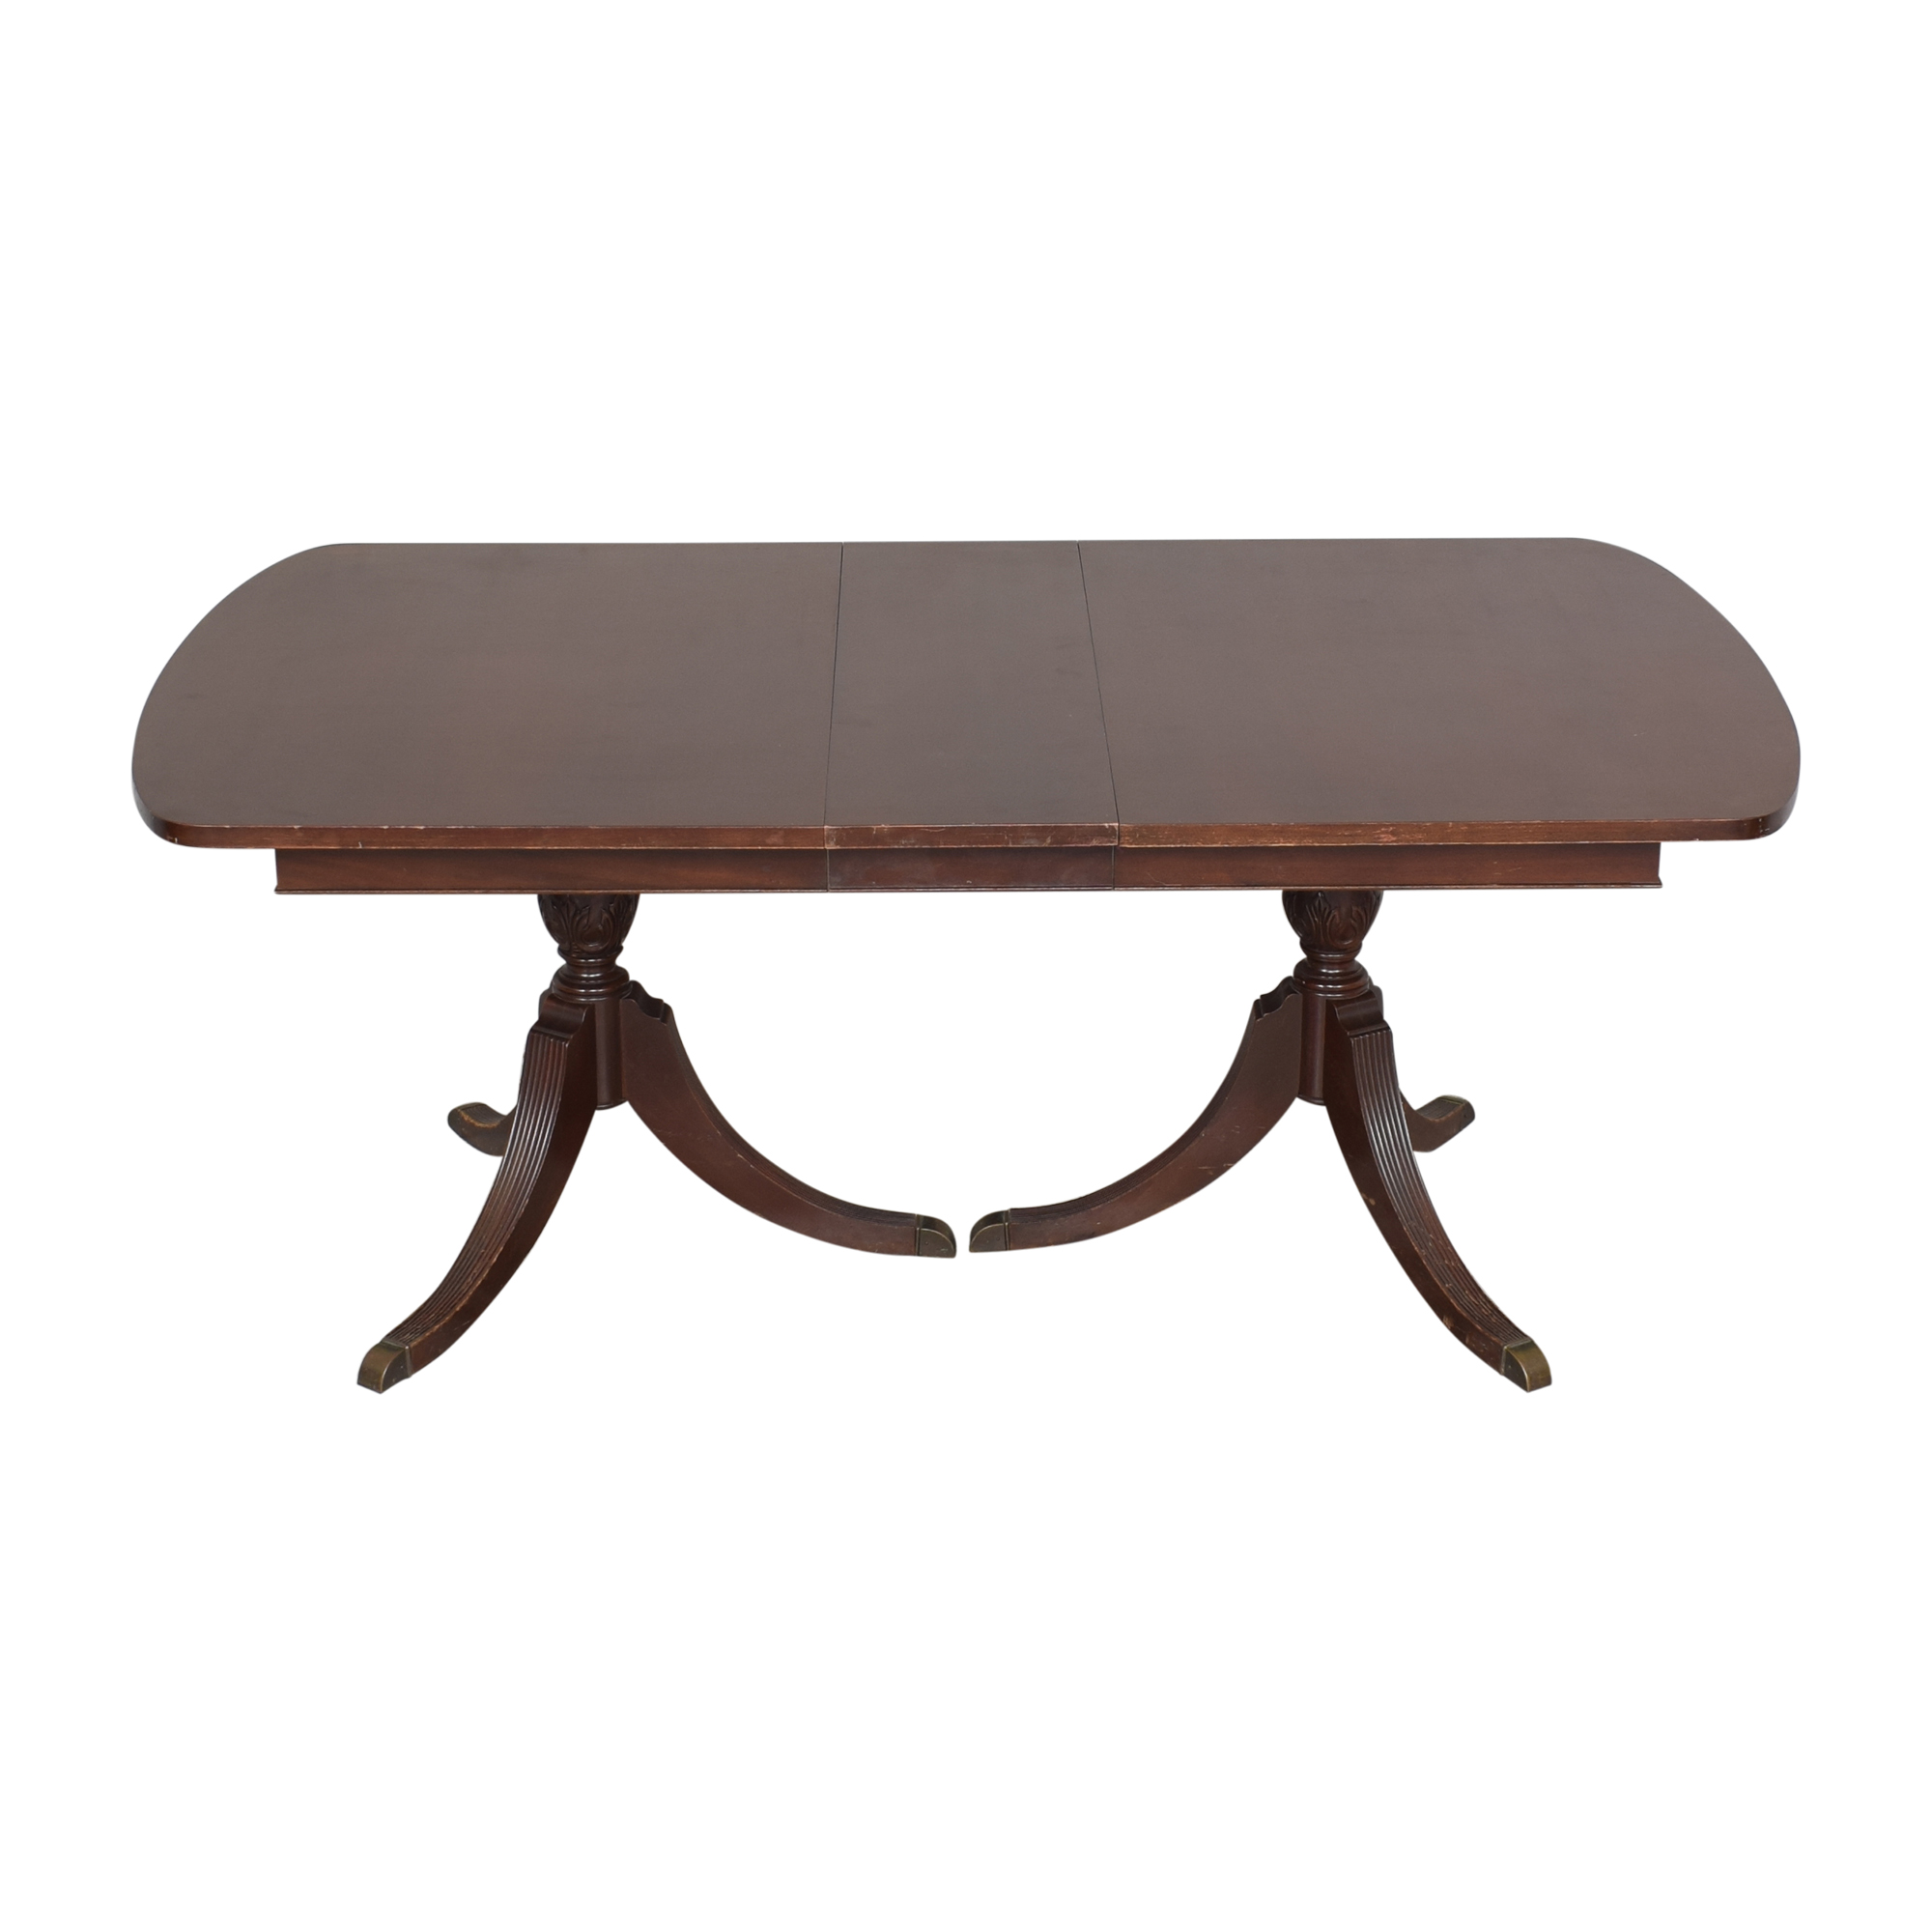 Finch Fine Furniture Double Pedestal Dining Table / Dinner Tables